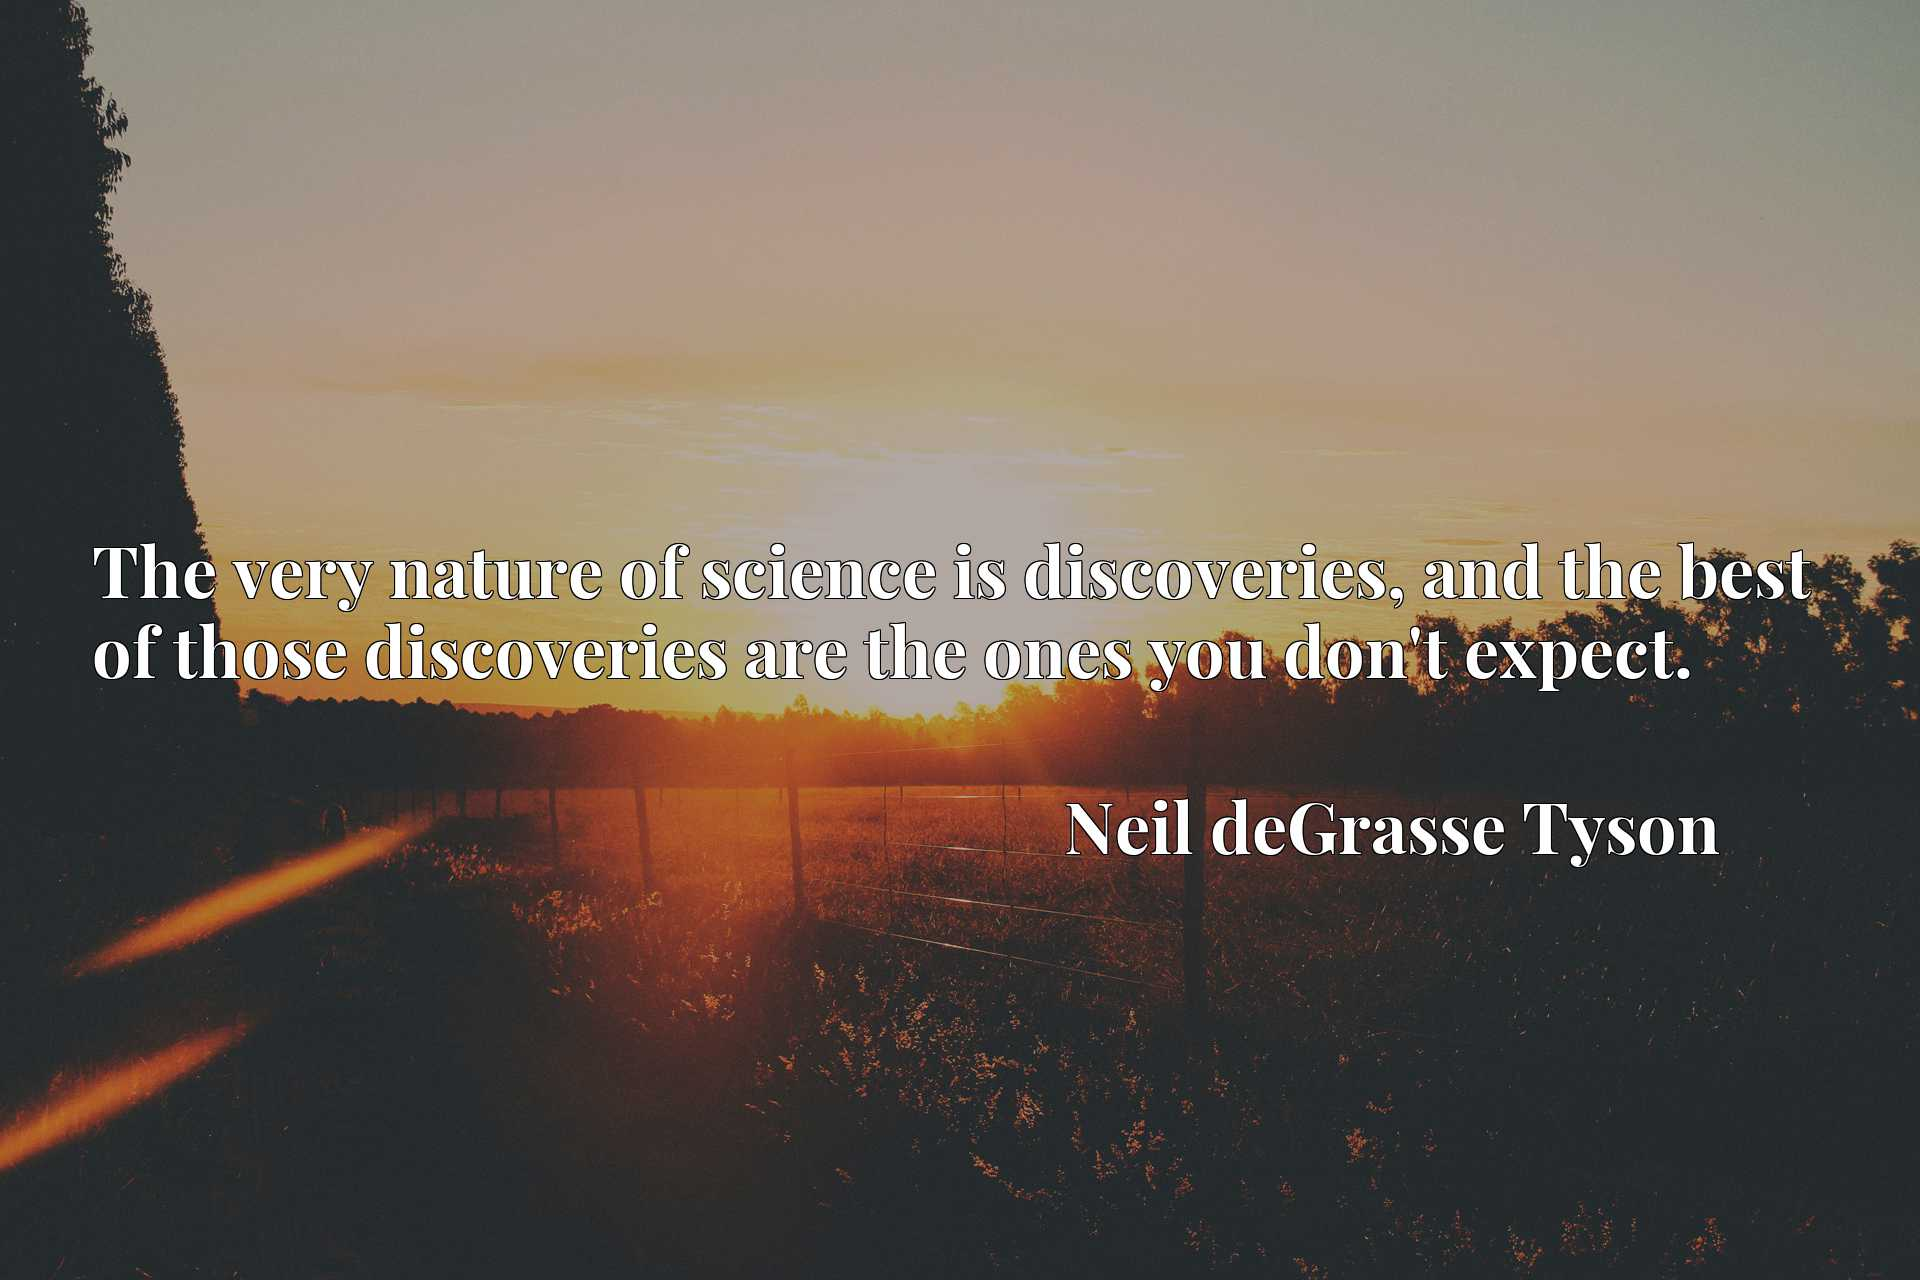 The very nature of science is discoveries, and the best of those discoveries are the ones you don't expect.